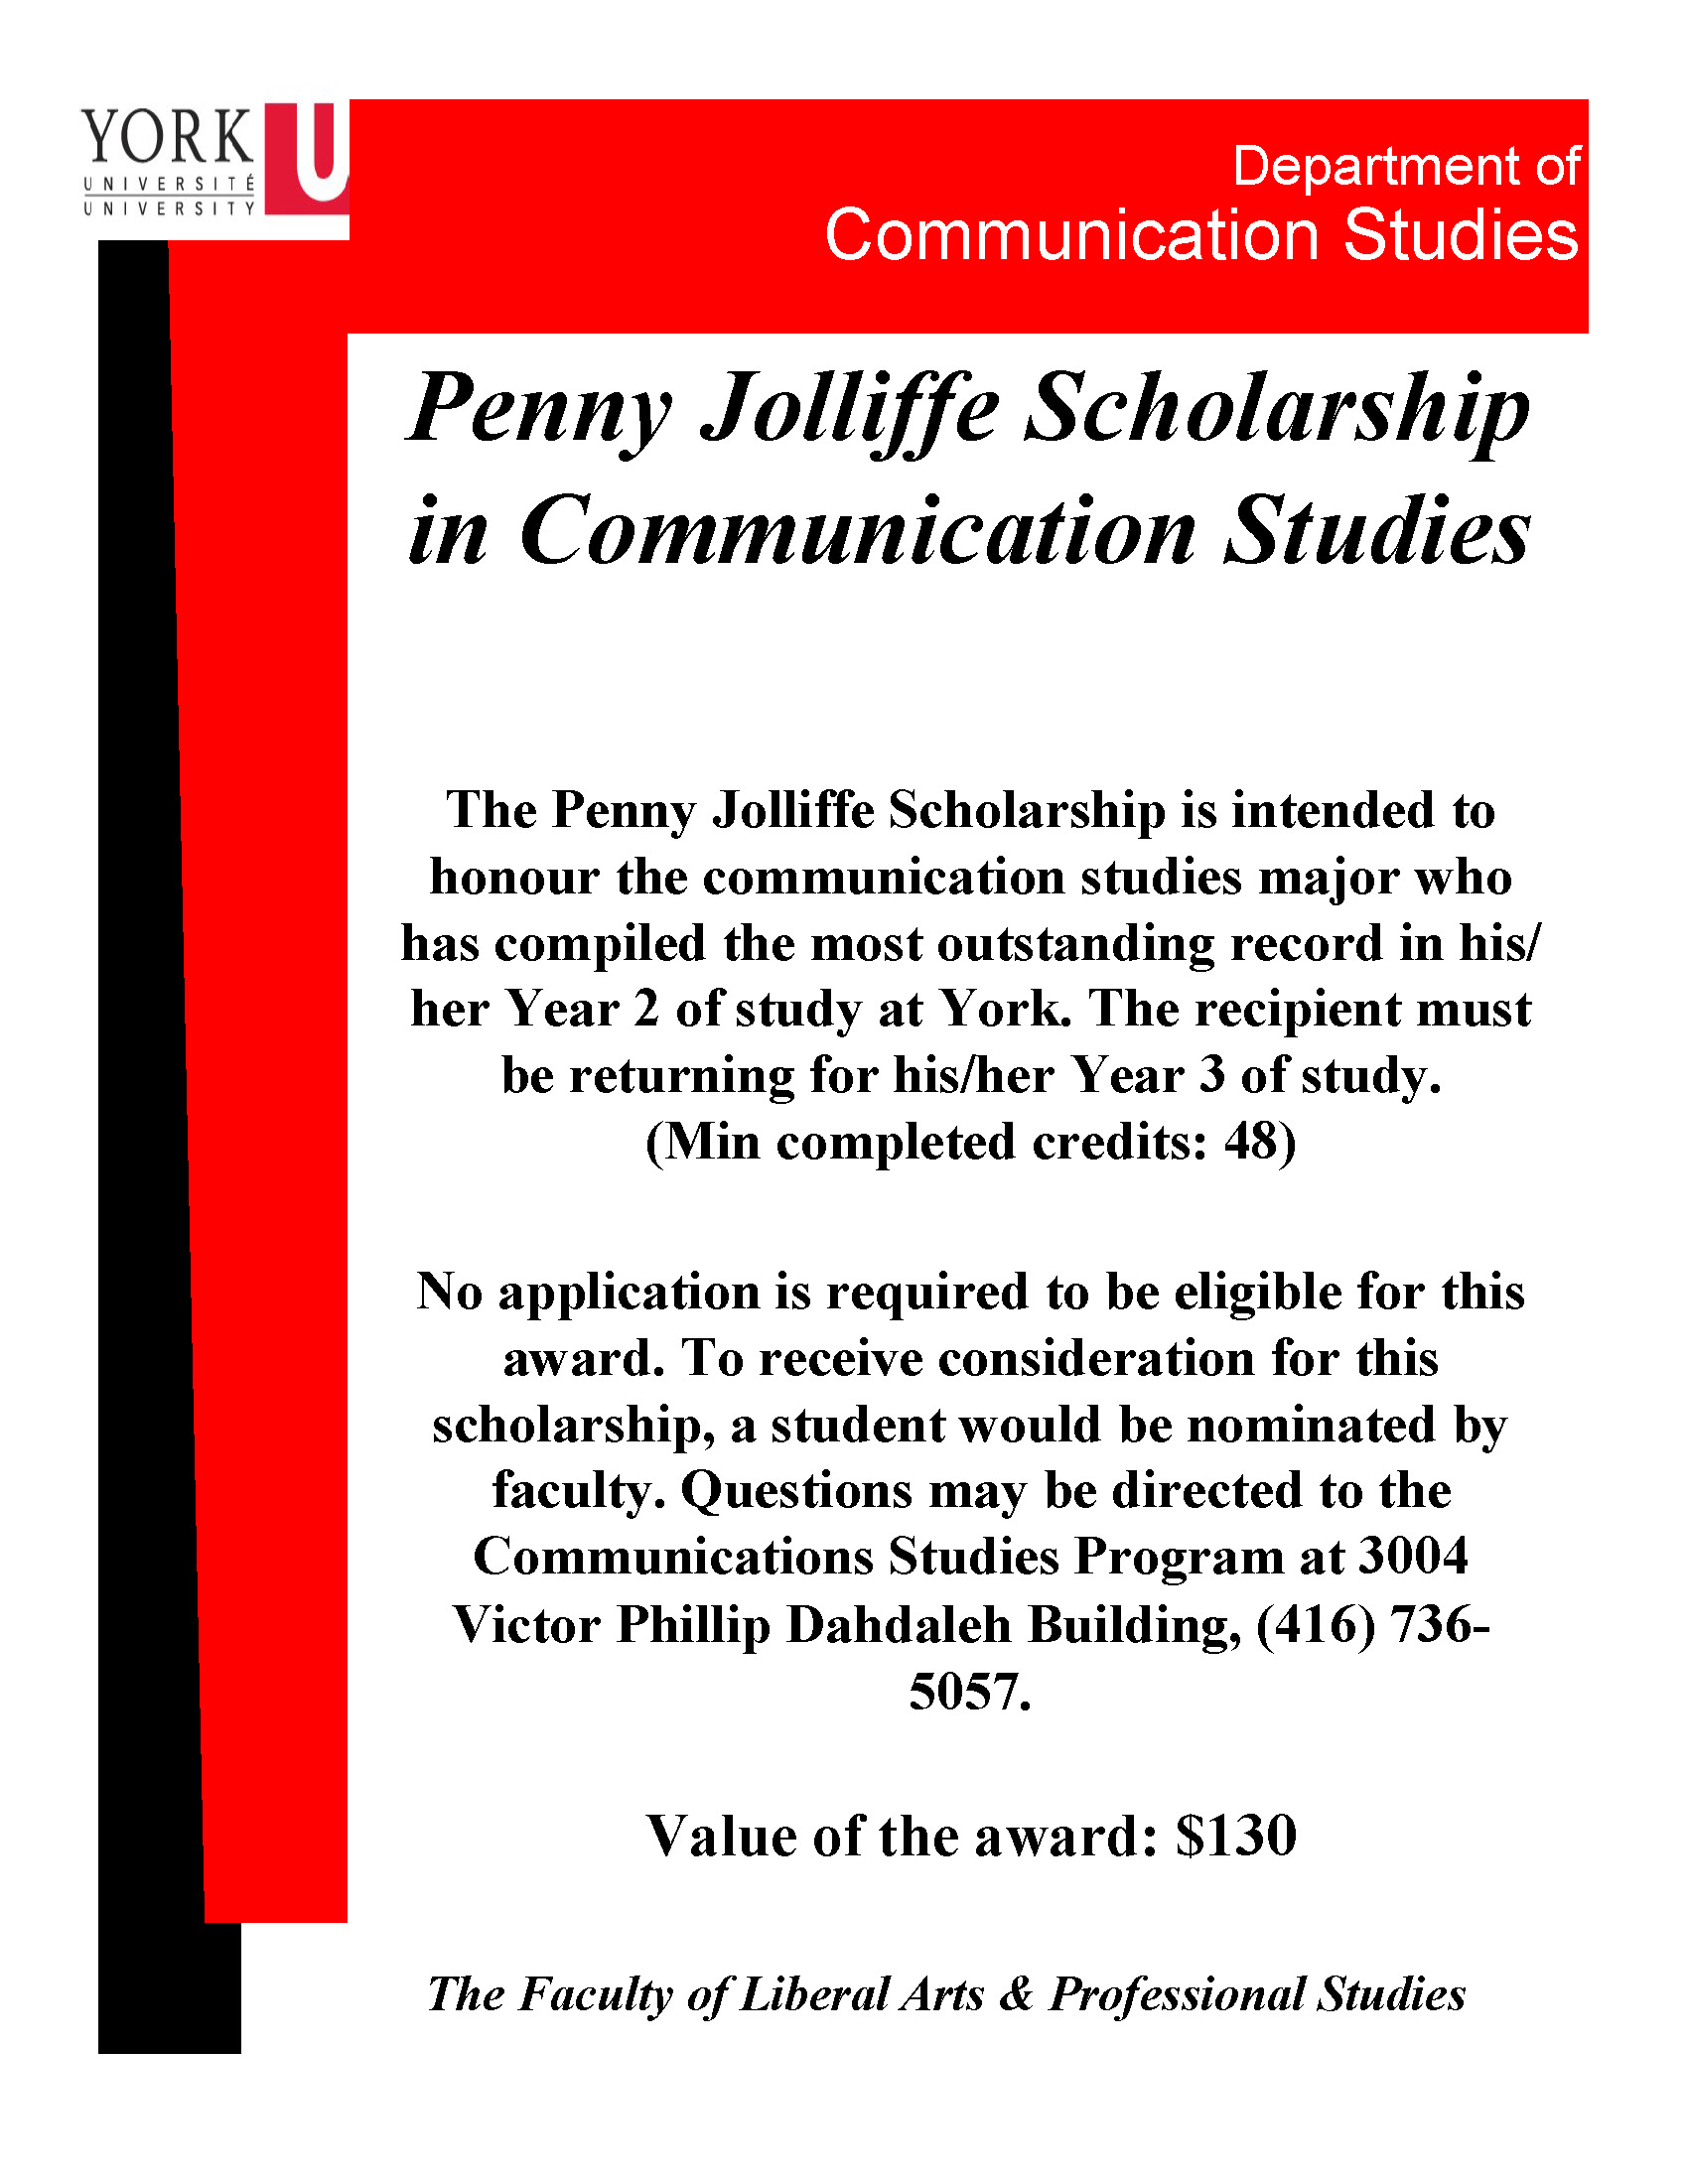 Penny Jolliffe Scholarship in Communication Studies